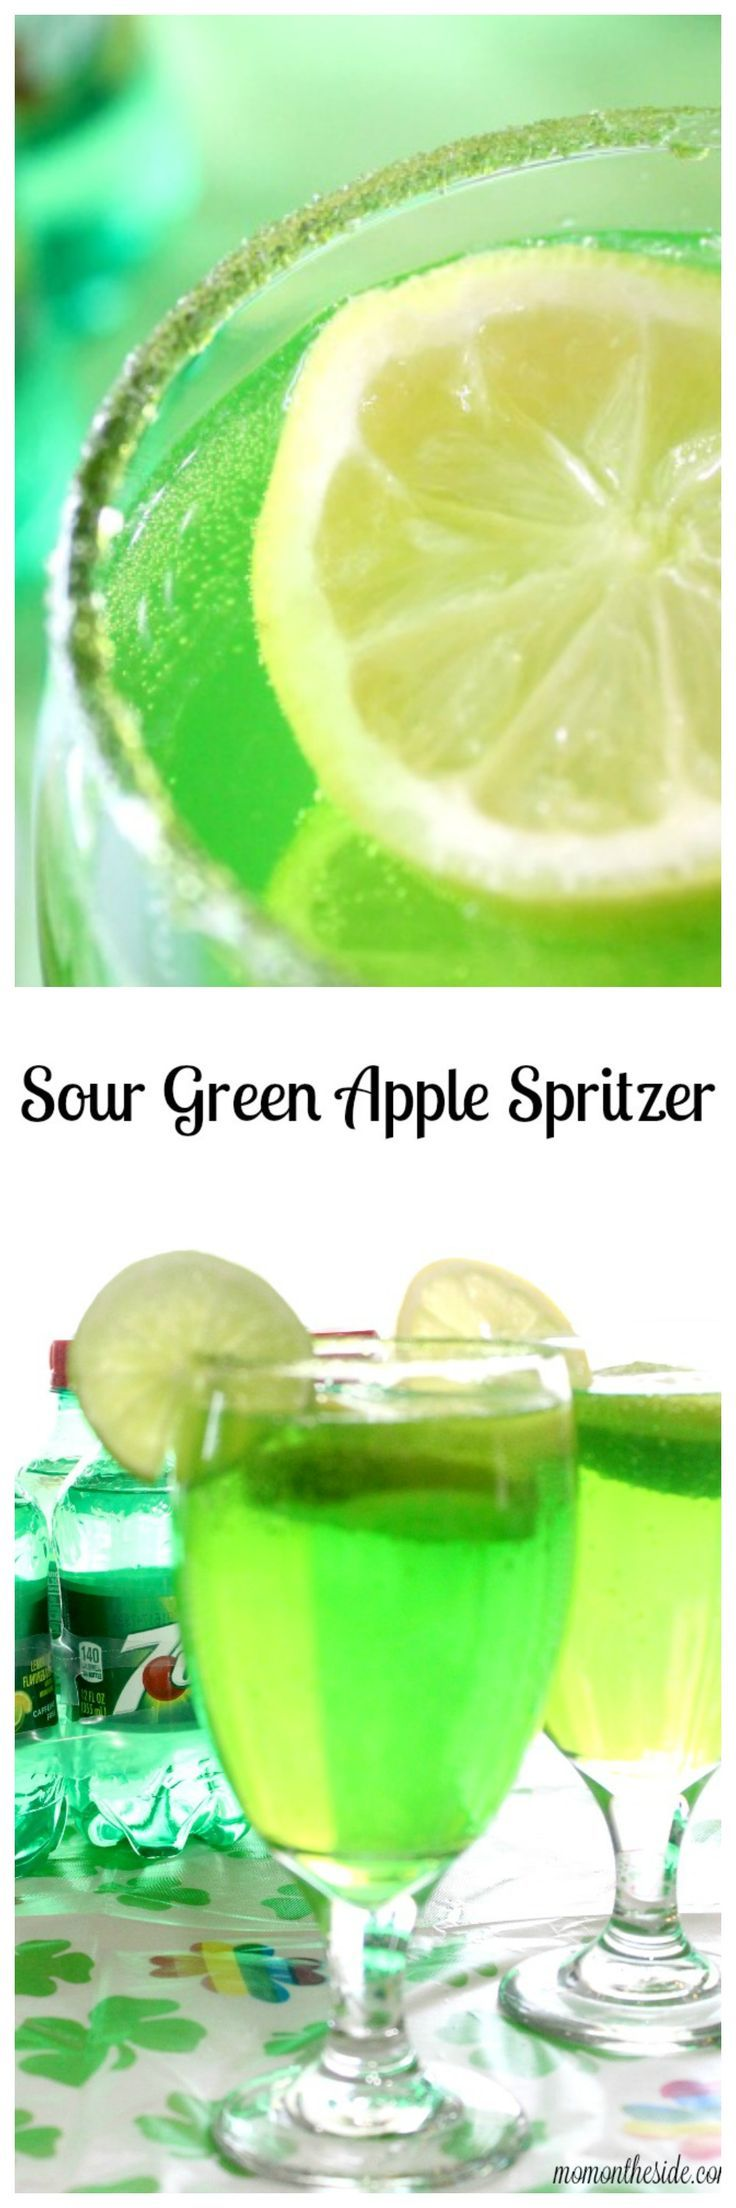 Sour Green Apple Spritzer is a drink for kids and adults to enjoy on St. Patrick's Day! via /momontheside/ #JustAdd7UP #ad